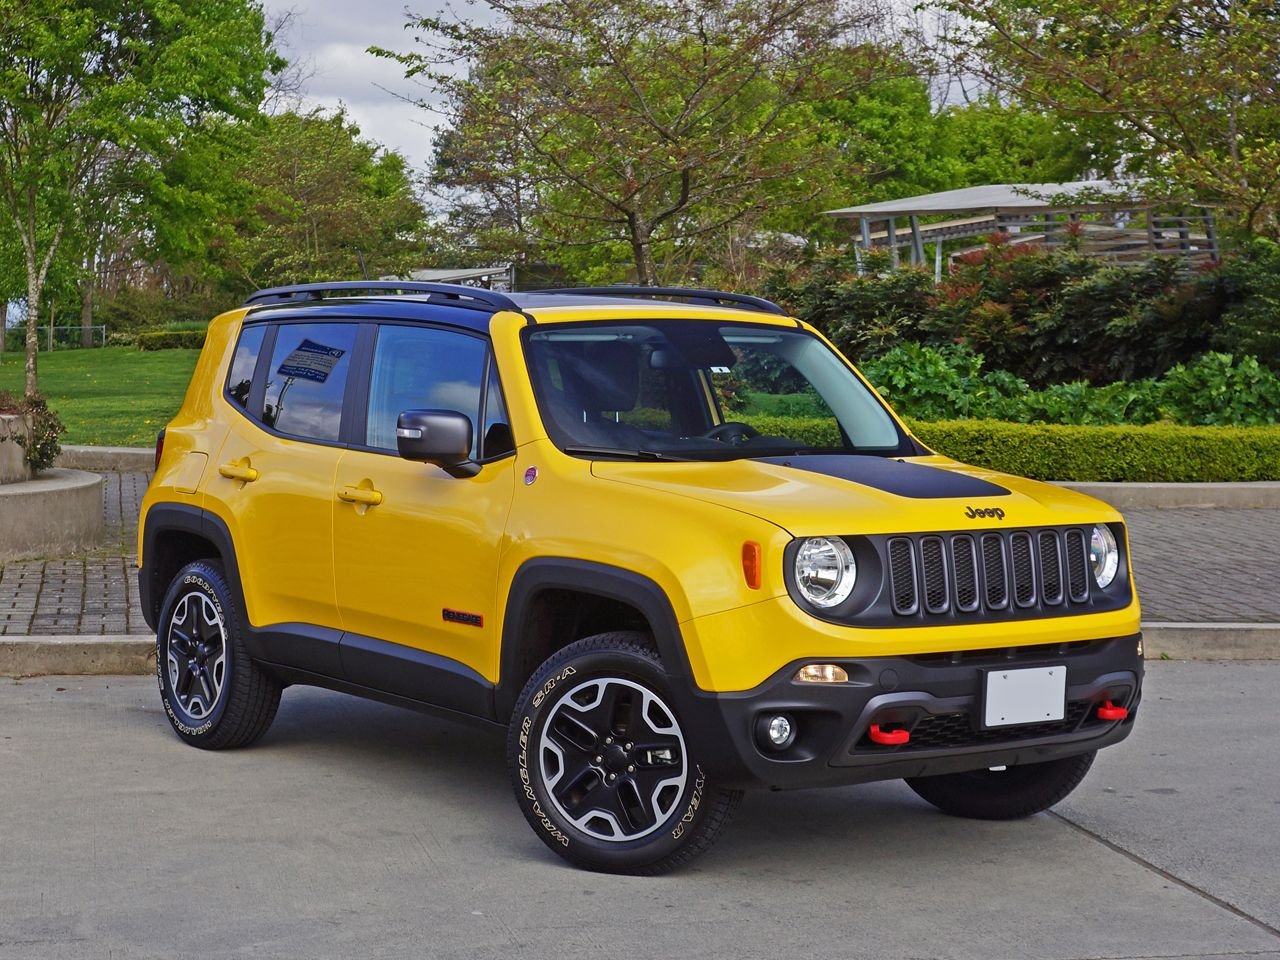 Jeep Renegade Yellow Autos Camionetas Caras